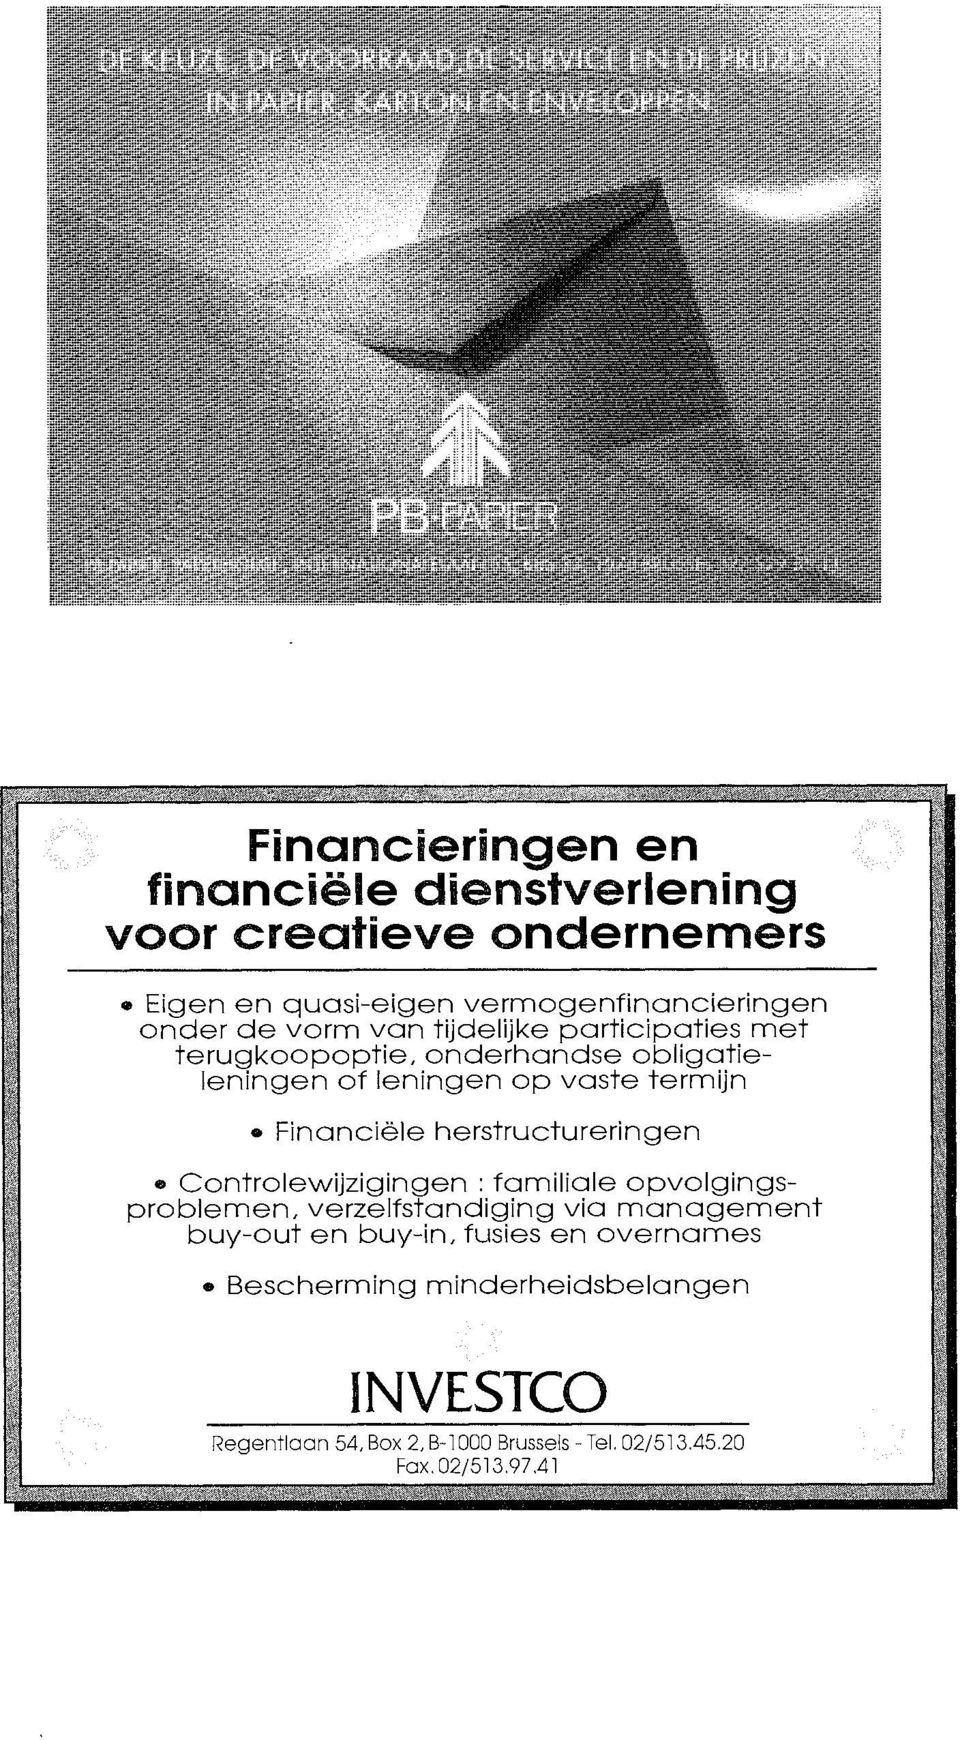 Controlewijzigingen : familiale opvolgingsproblemen, verzelfstandiging via management buy-out en buy-in,